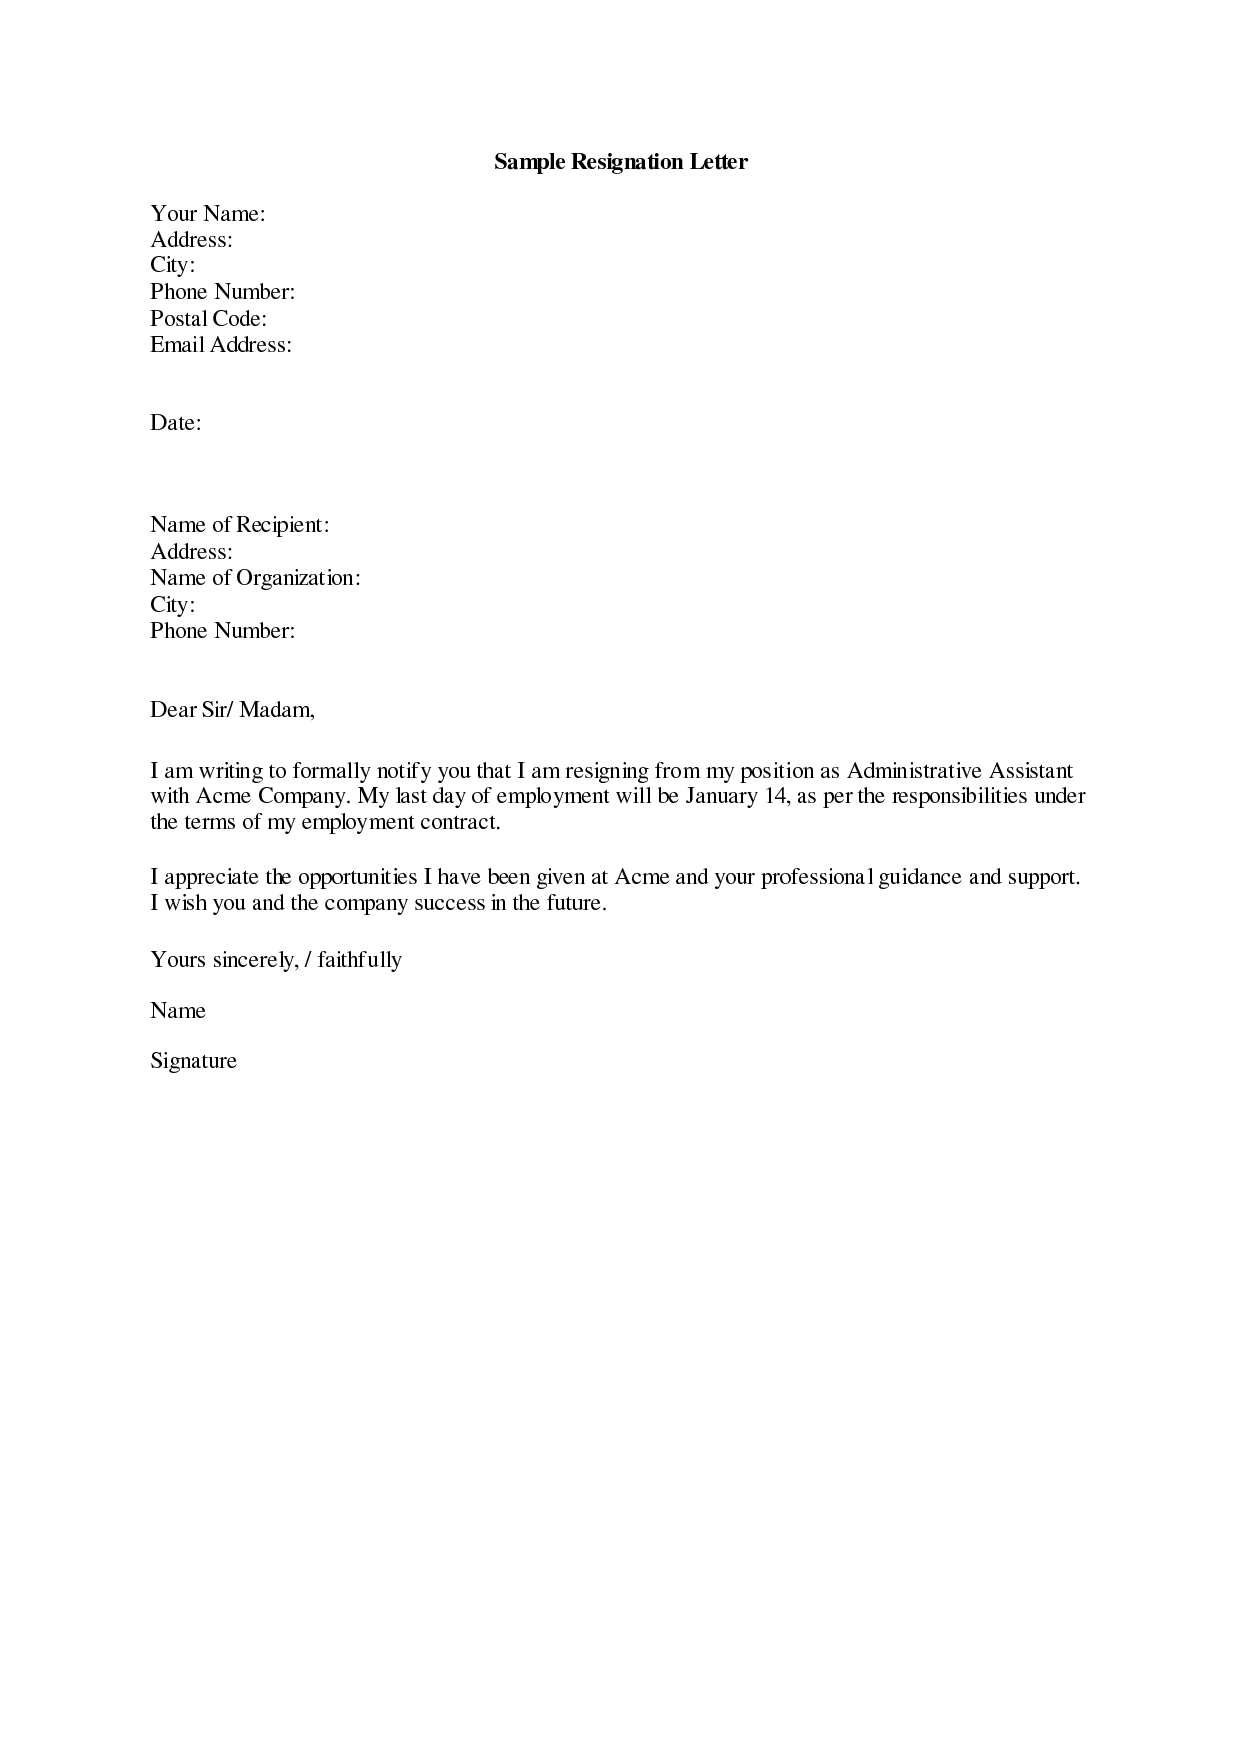 18 Photos of Template Of Resignation Letter In Word – Sample Resignation Letters